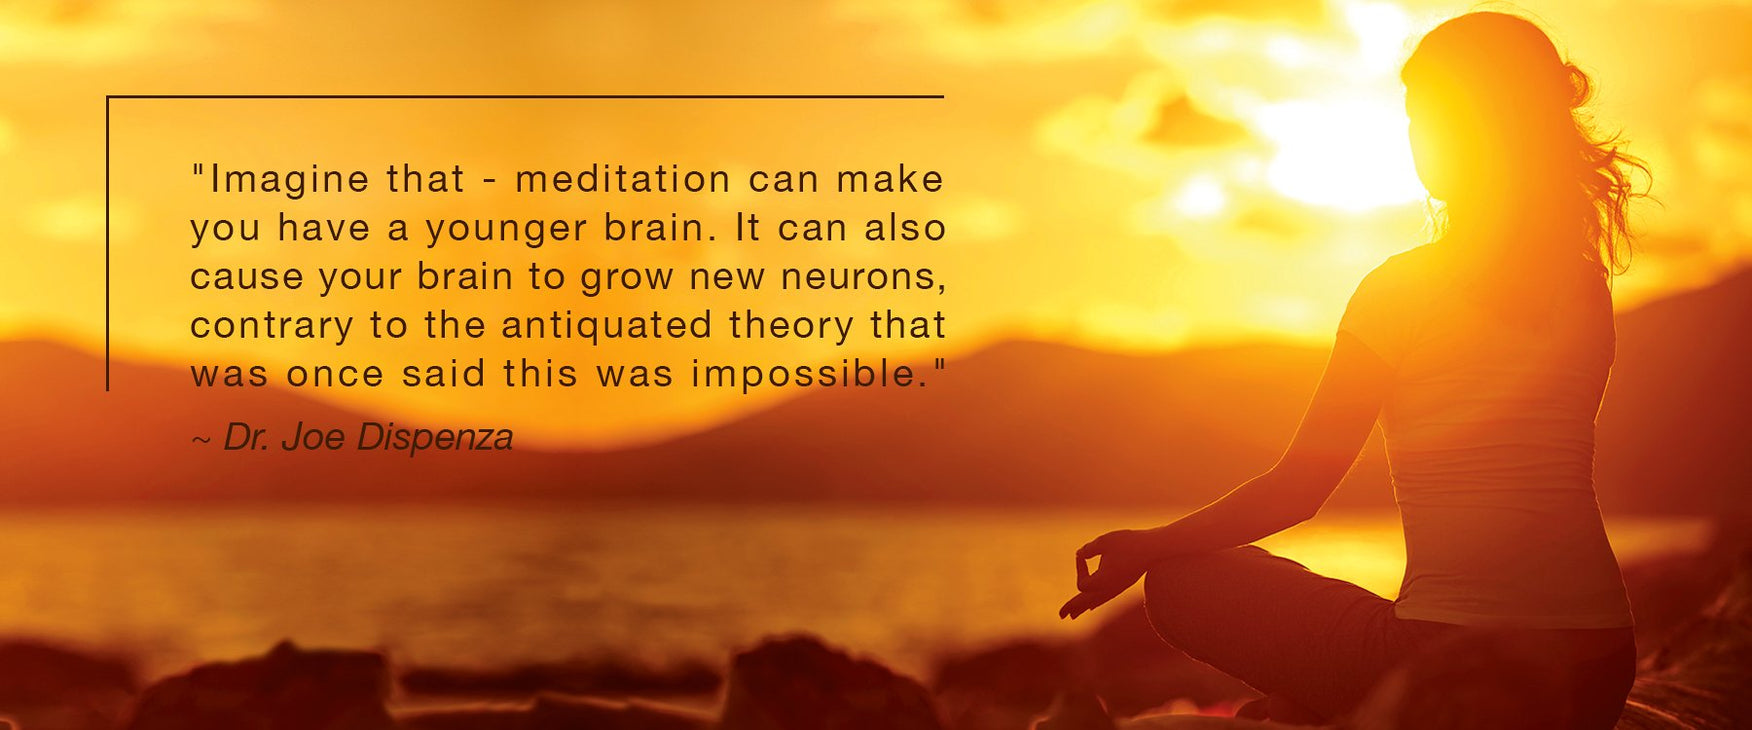 New Studies Continuously Point to the Efficacy of Meditation